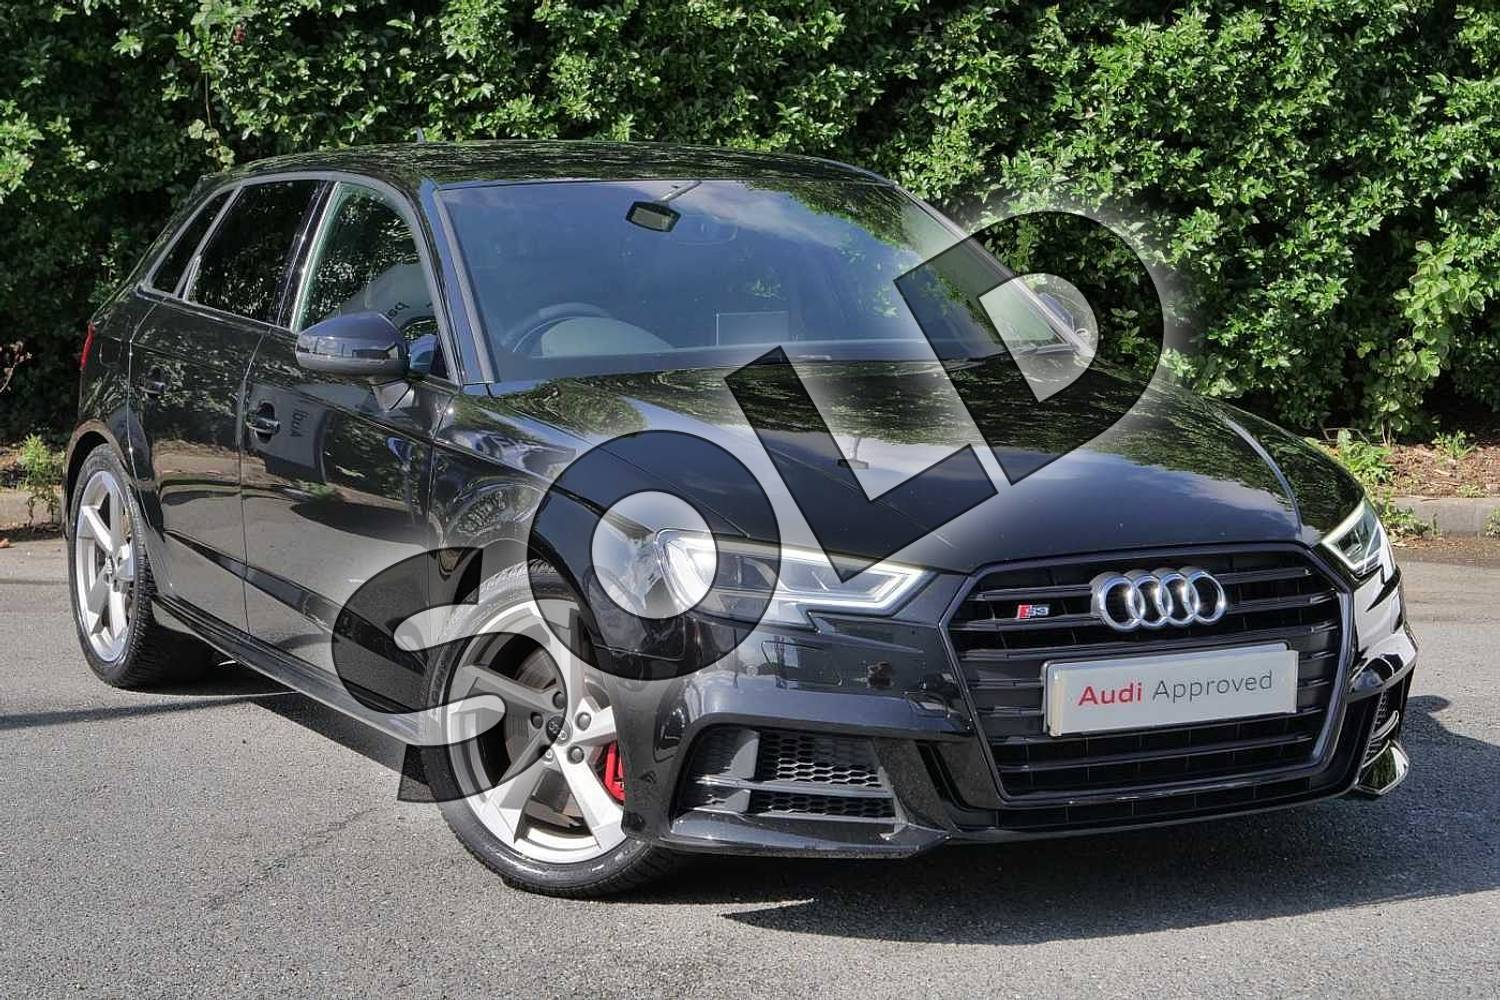 Audi A3 S3 Tfsi Quattro Black Edition 5dr S Tronic For Sale At Worcester Audi Ref 024 U461333